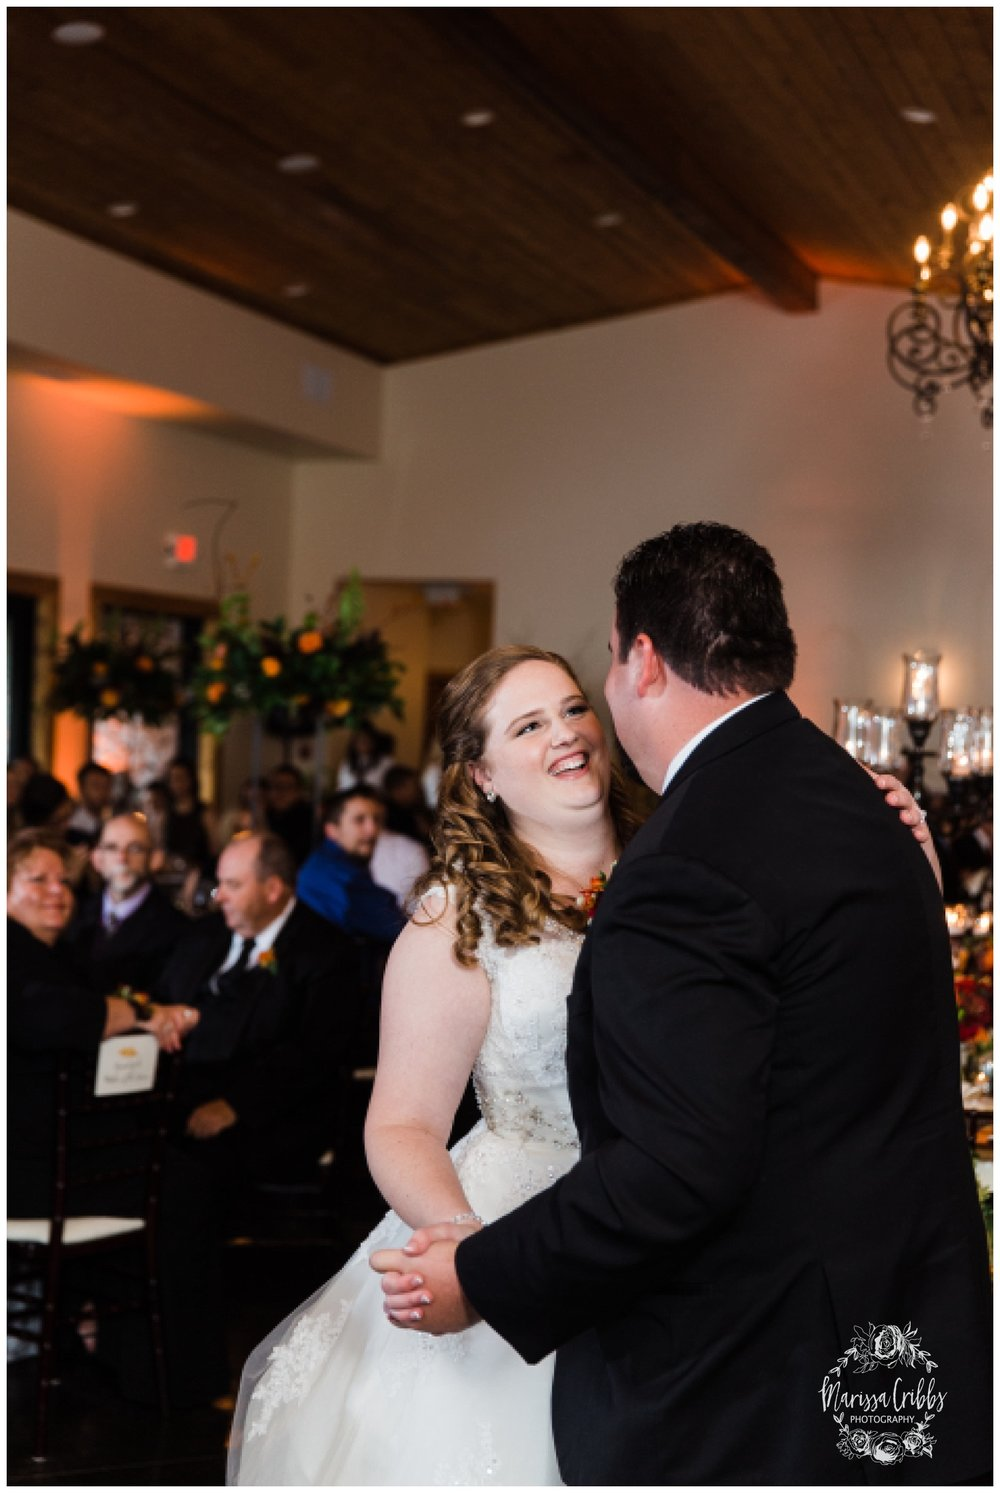 KELLY WEDDING | VENUE AT WILLOW CREEK | MARISSA CRIBBS PHOTOGRAPHY_3758.jpg